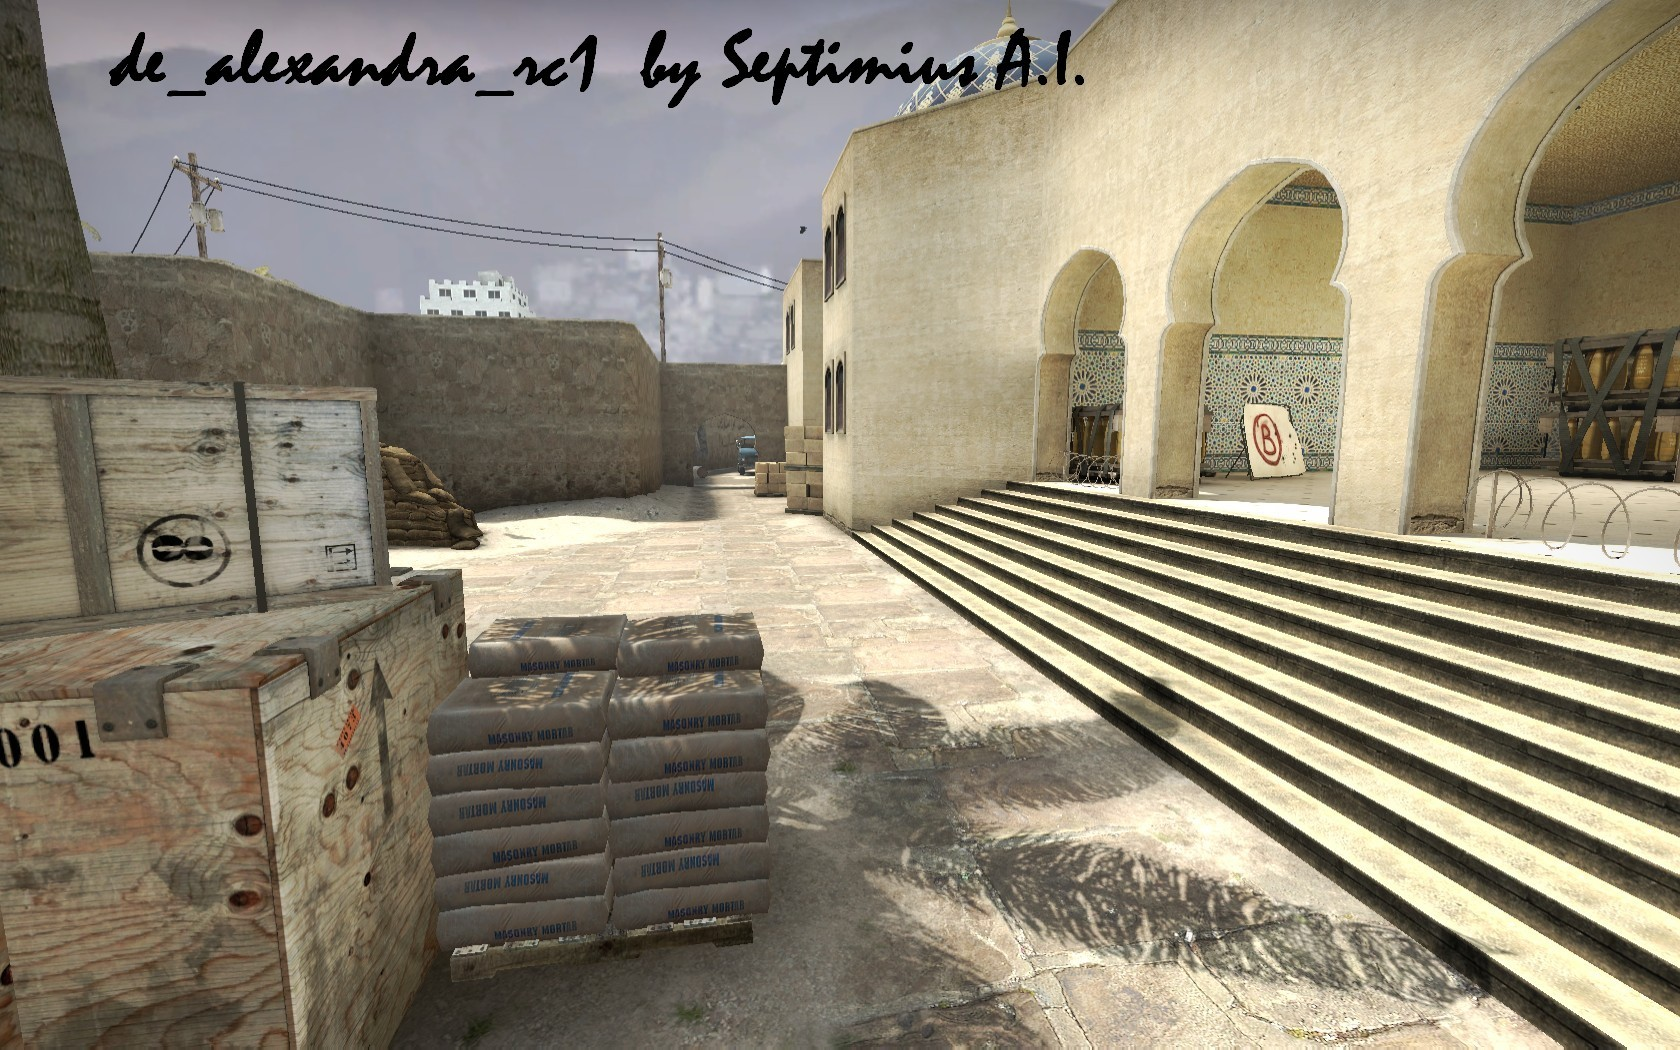 counter-strike.biz-maps-de alexandra rc1-scr-02